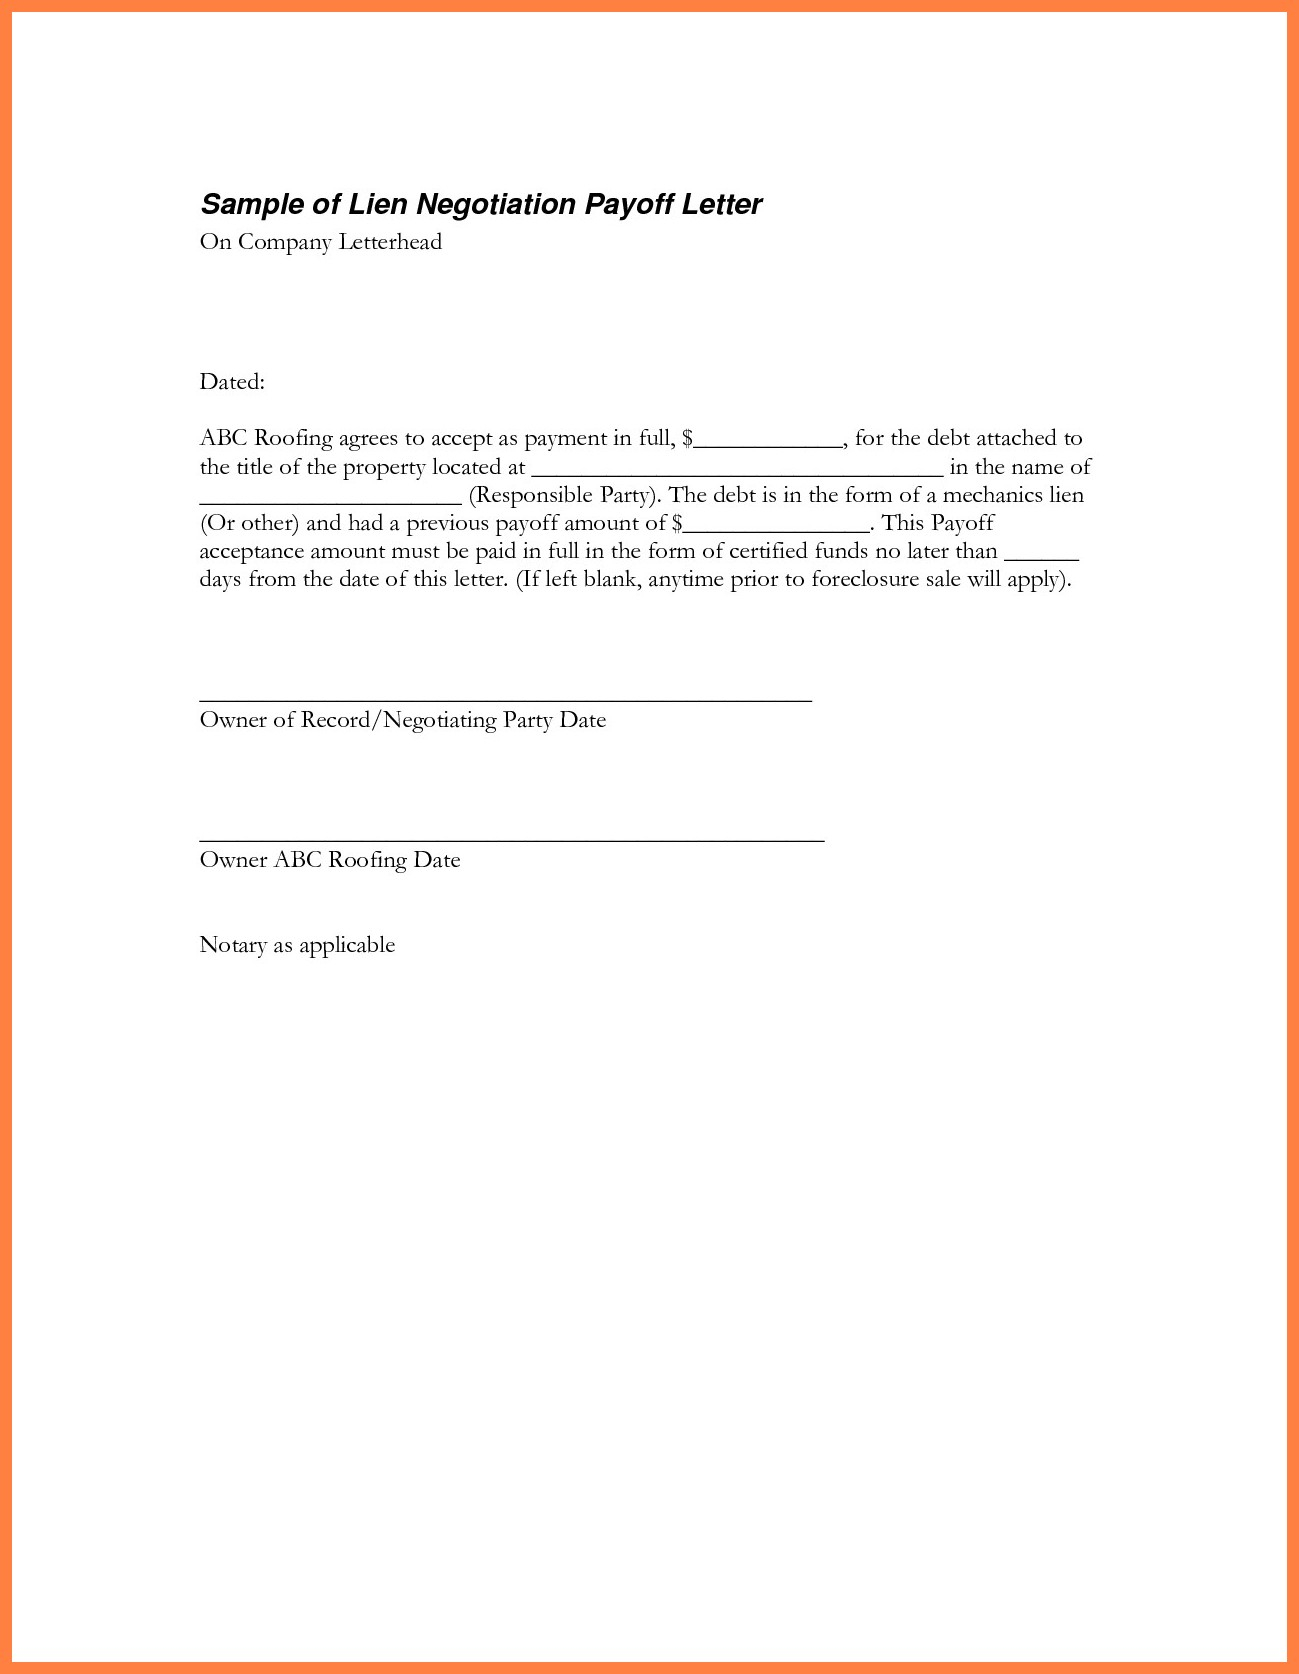 Personal Loan Payoff Letter Template - Inspiration 9 Best Sample Loan Payoff Letter form Loan Payoff